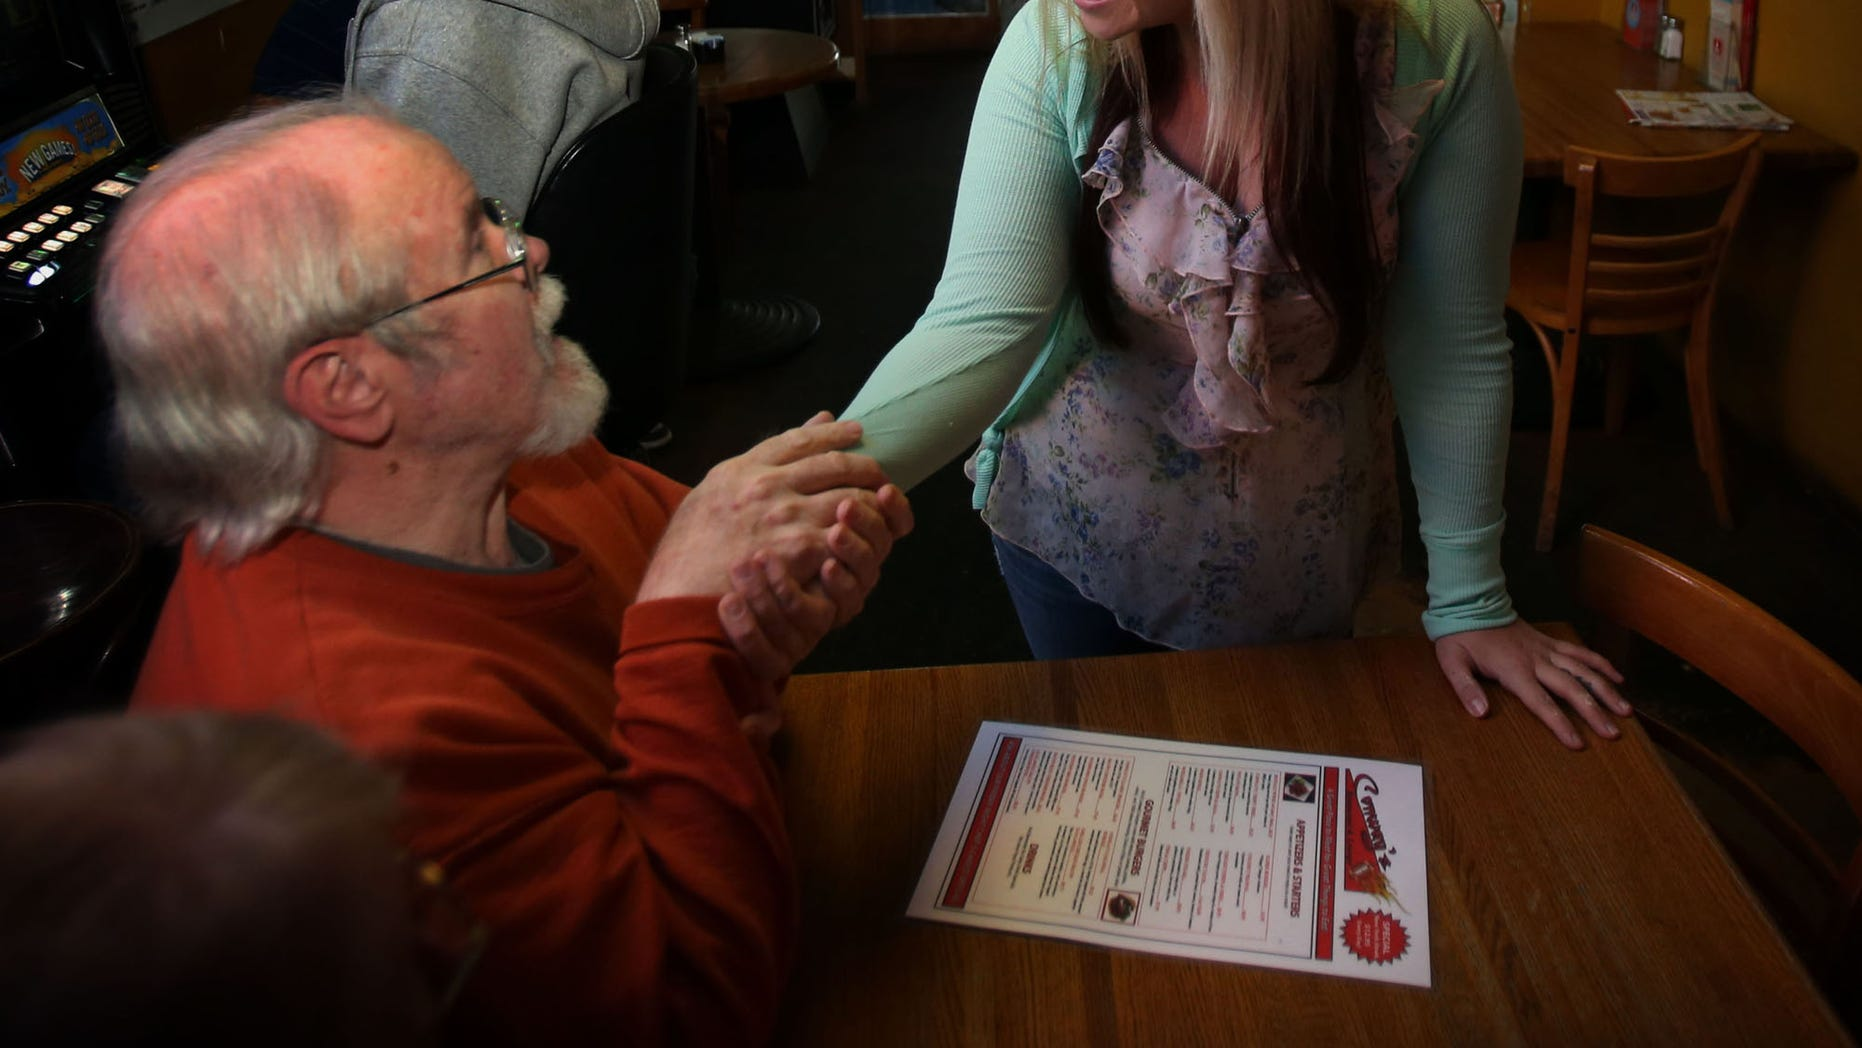 Customer Jerry Arnett, left,  congratulates  Aurora Kephart, a bartender in Springfield, Ore., Friday Oct. 4, 2013 after learning that she indirectly received a $17,500 tip when one of her customers happened to give her a winning lottery ticket this week.  The Oregon Lottery reports that one of Kephart's regular customers at Conways Restaurant gave her a couple Keno tickets on Tuesday and when she checked one was a big winner. (AP Photo/The Register-Guard, Chris Pietsch)